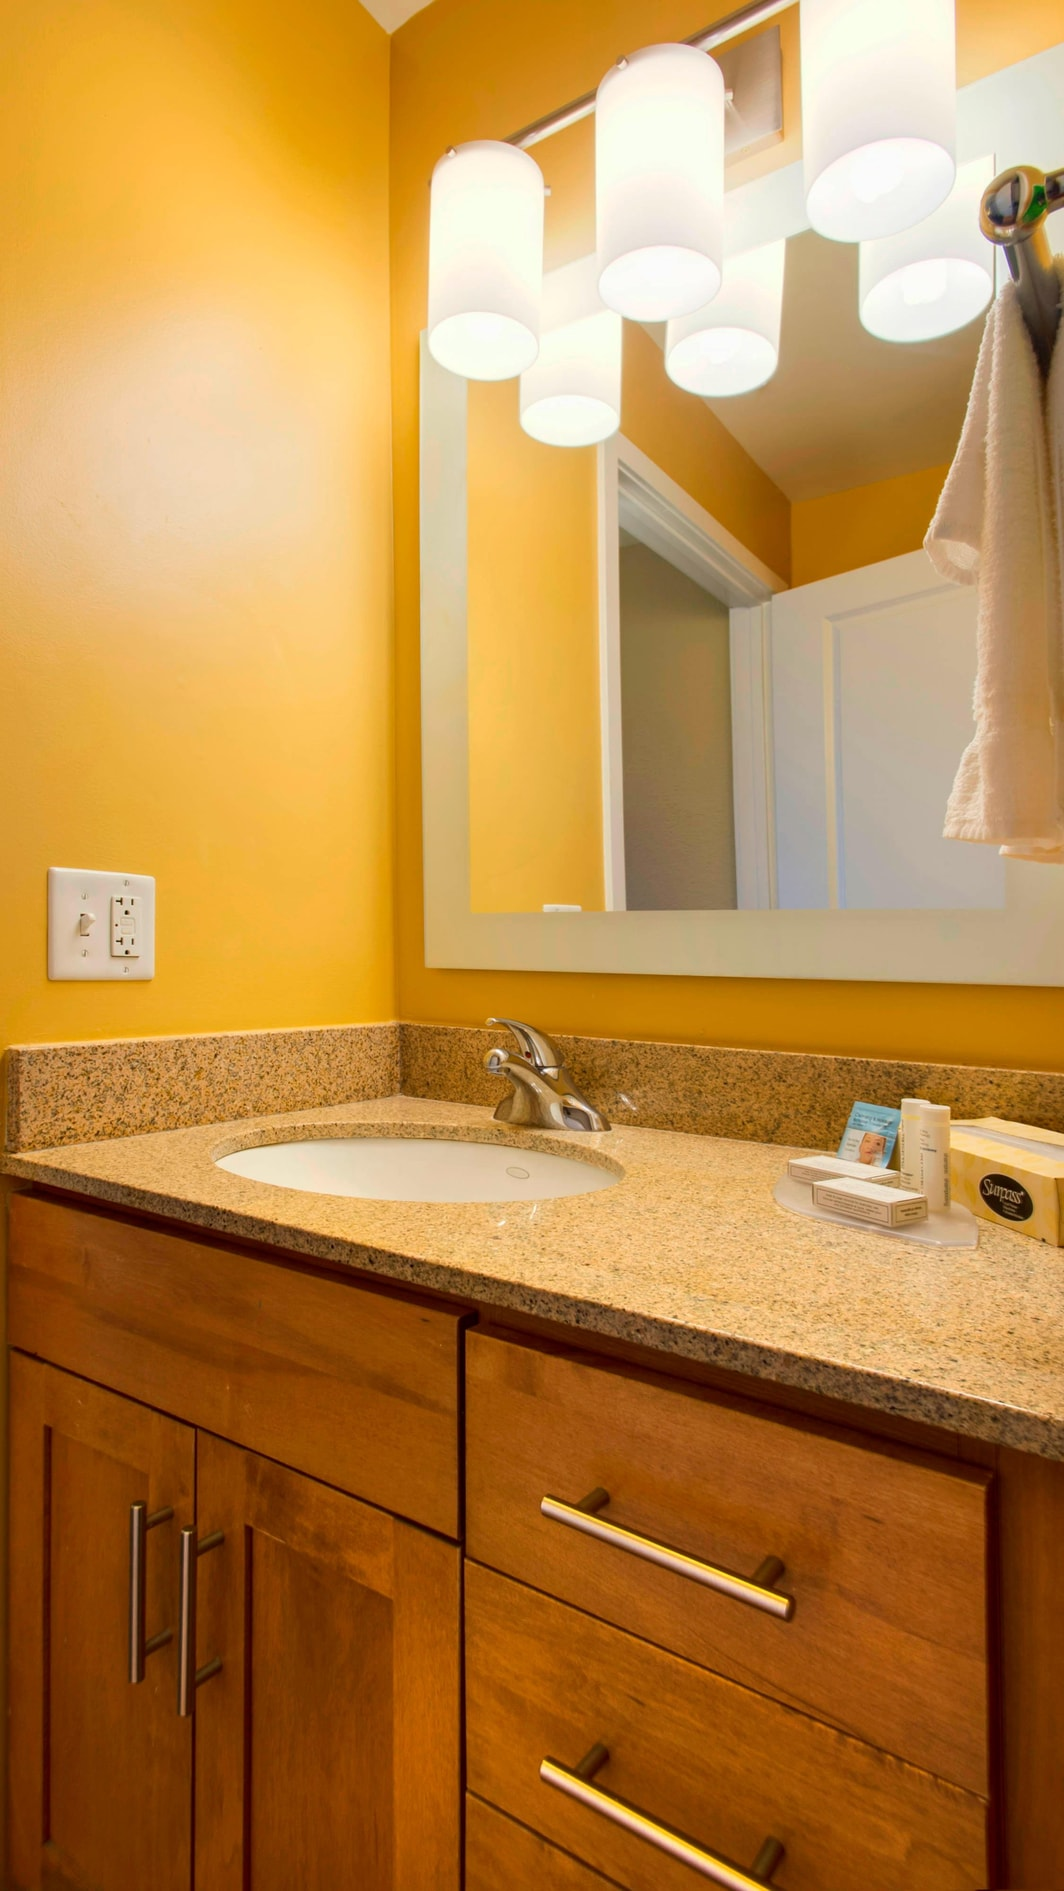 Towneplace Suites Bathroom, Overland Park